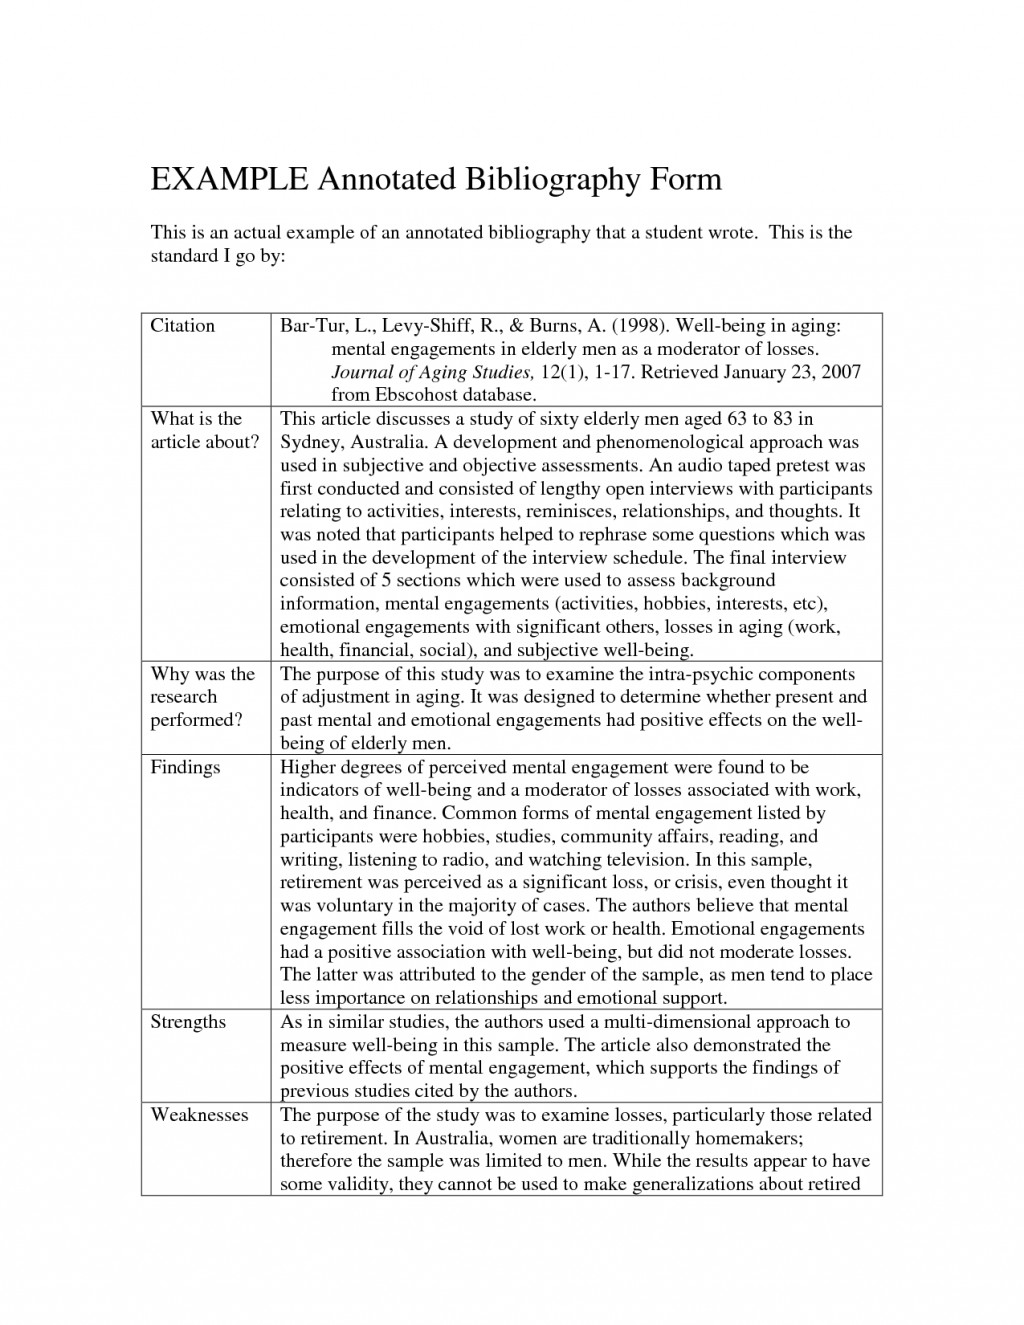 001 Annotated Bibliography Research Paper Sample Wonderful Large